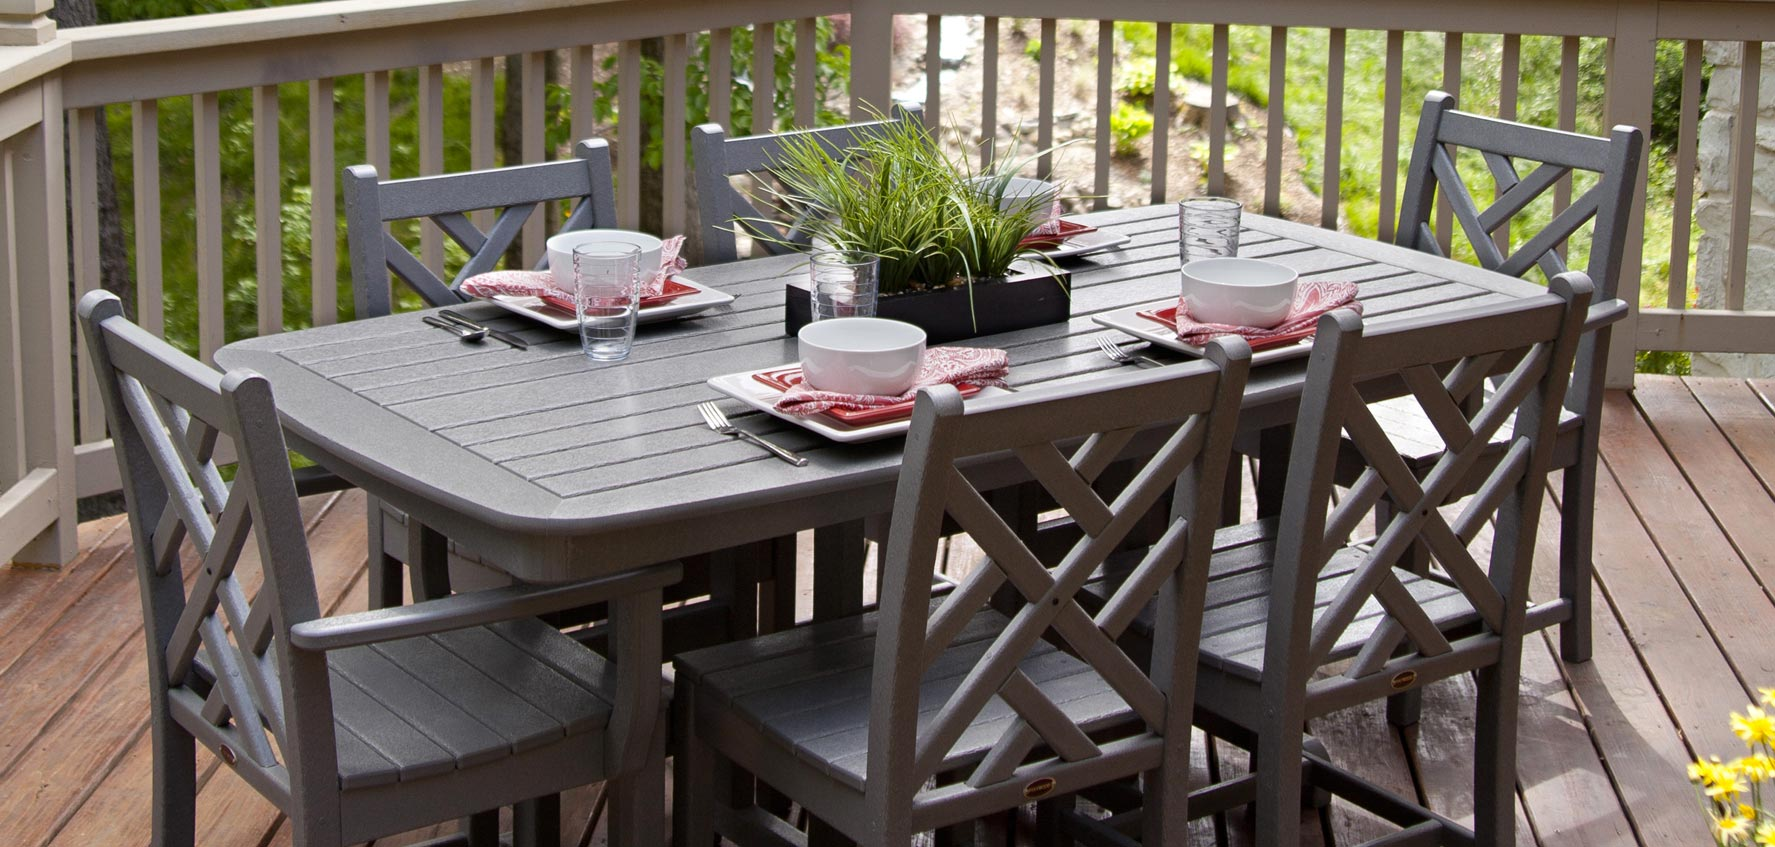 chippendale outdoor furniture by